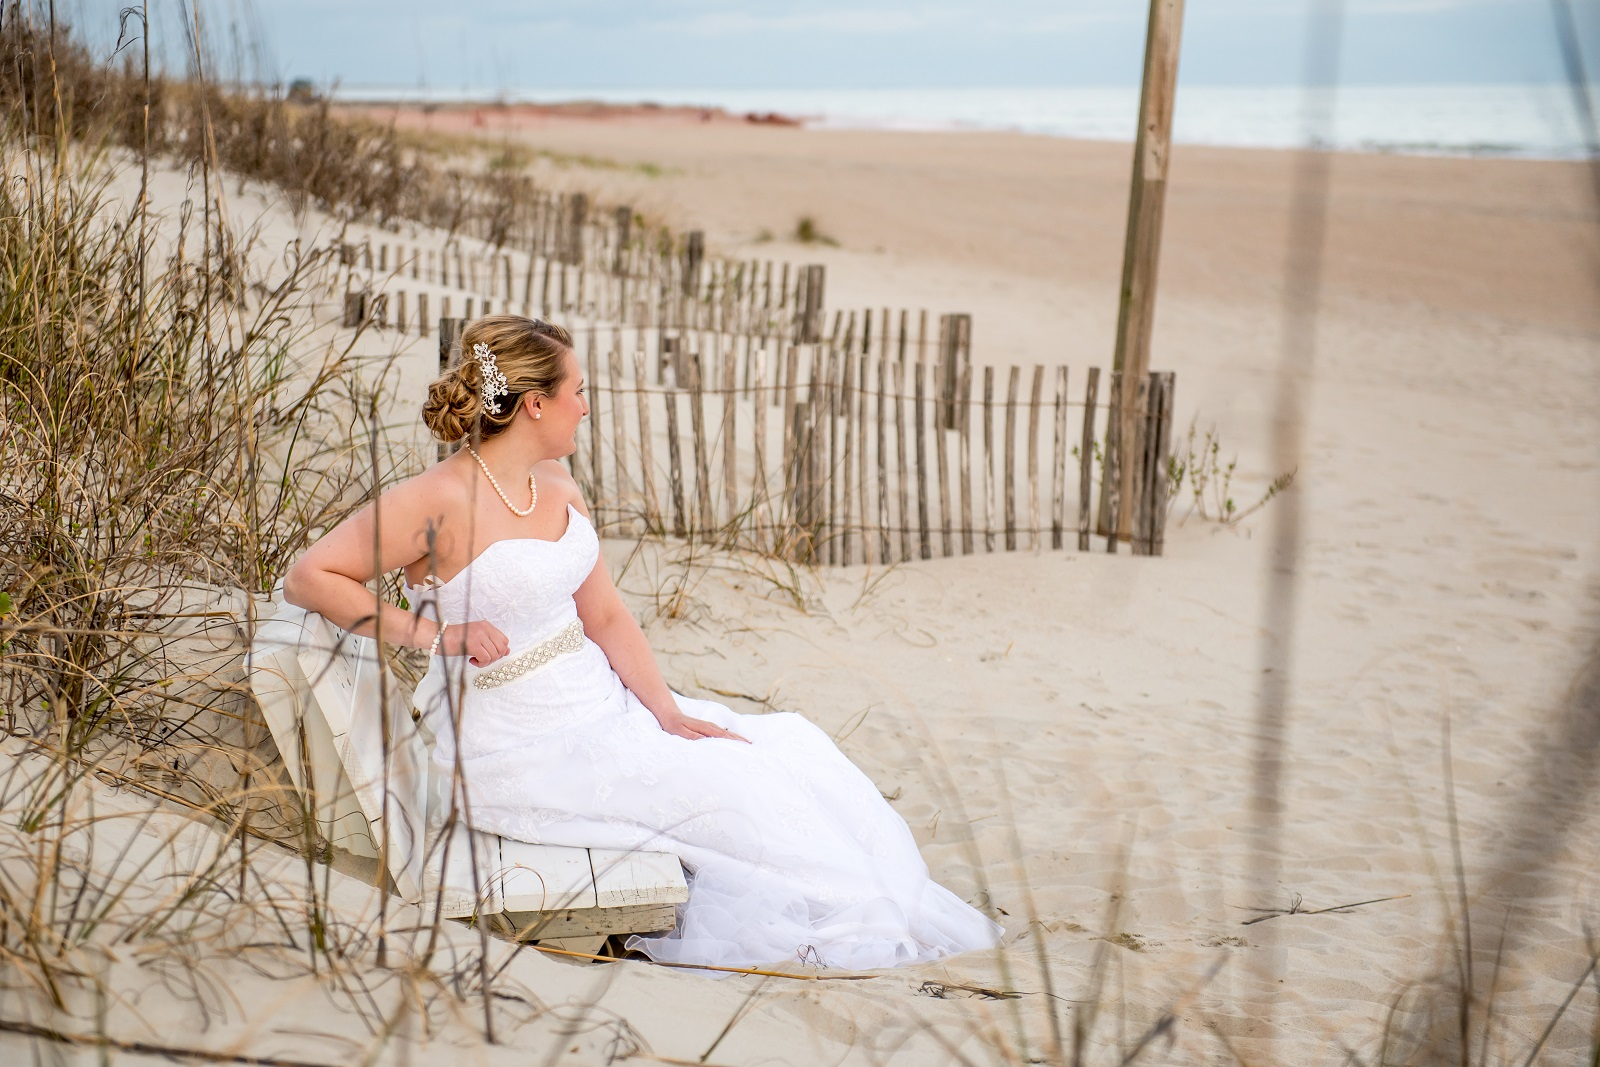 Atlantic Beach Bride Brittany 2018 wedding season is here Beaufort Photography Co.